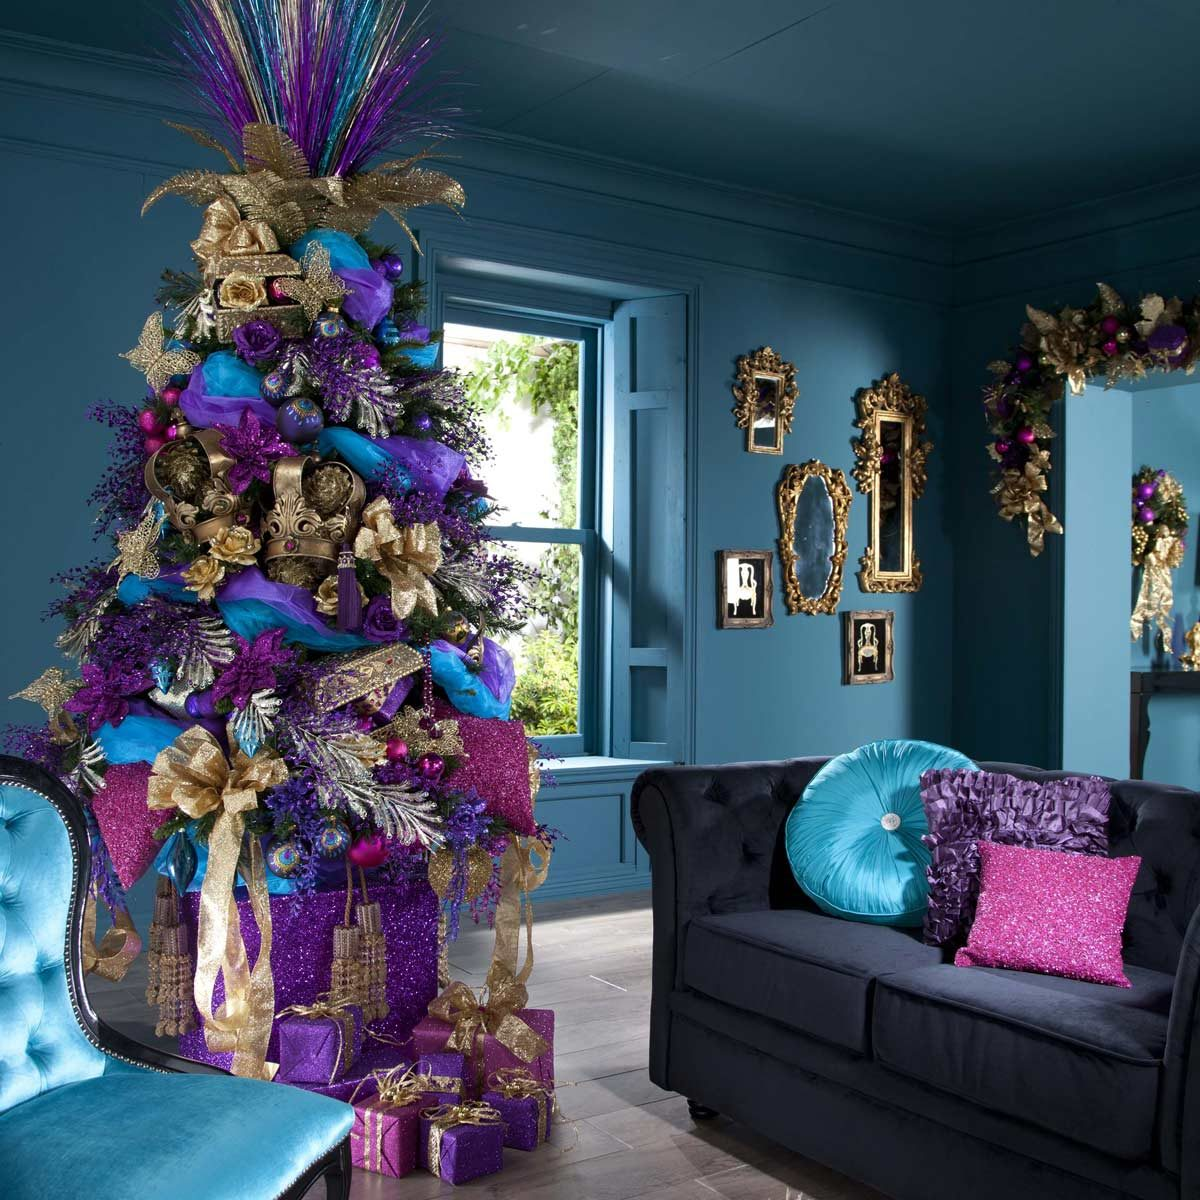 Christmas Tree Decorating Ideas: A Picture of a Peacock